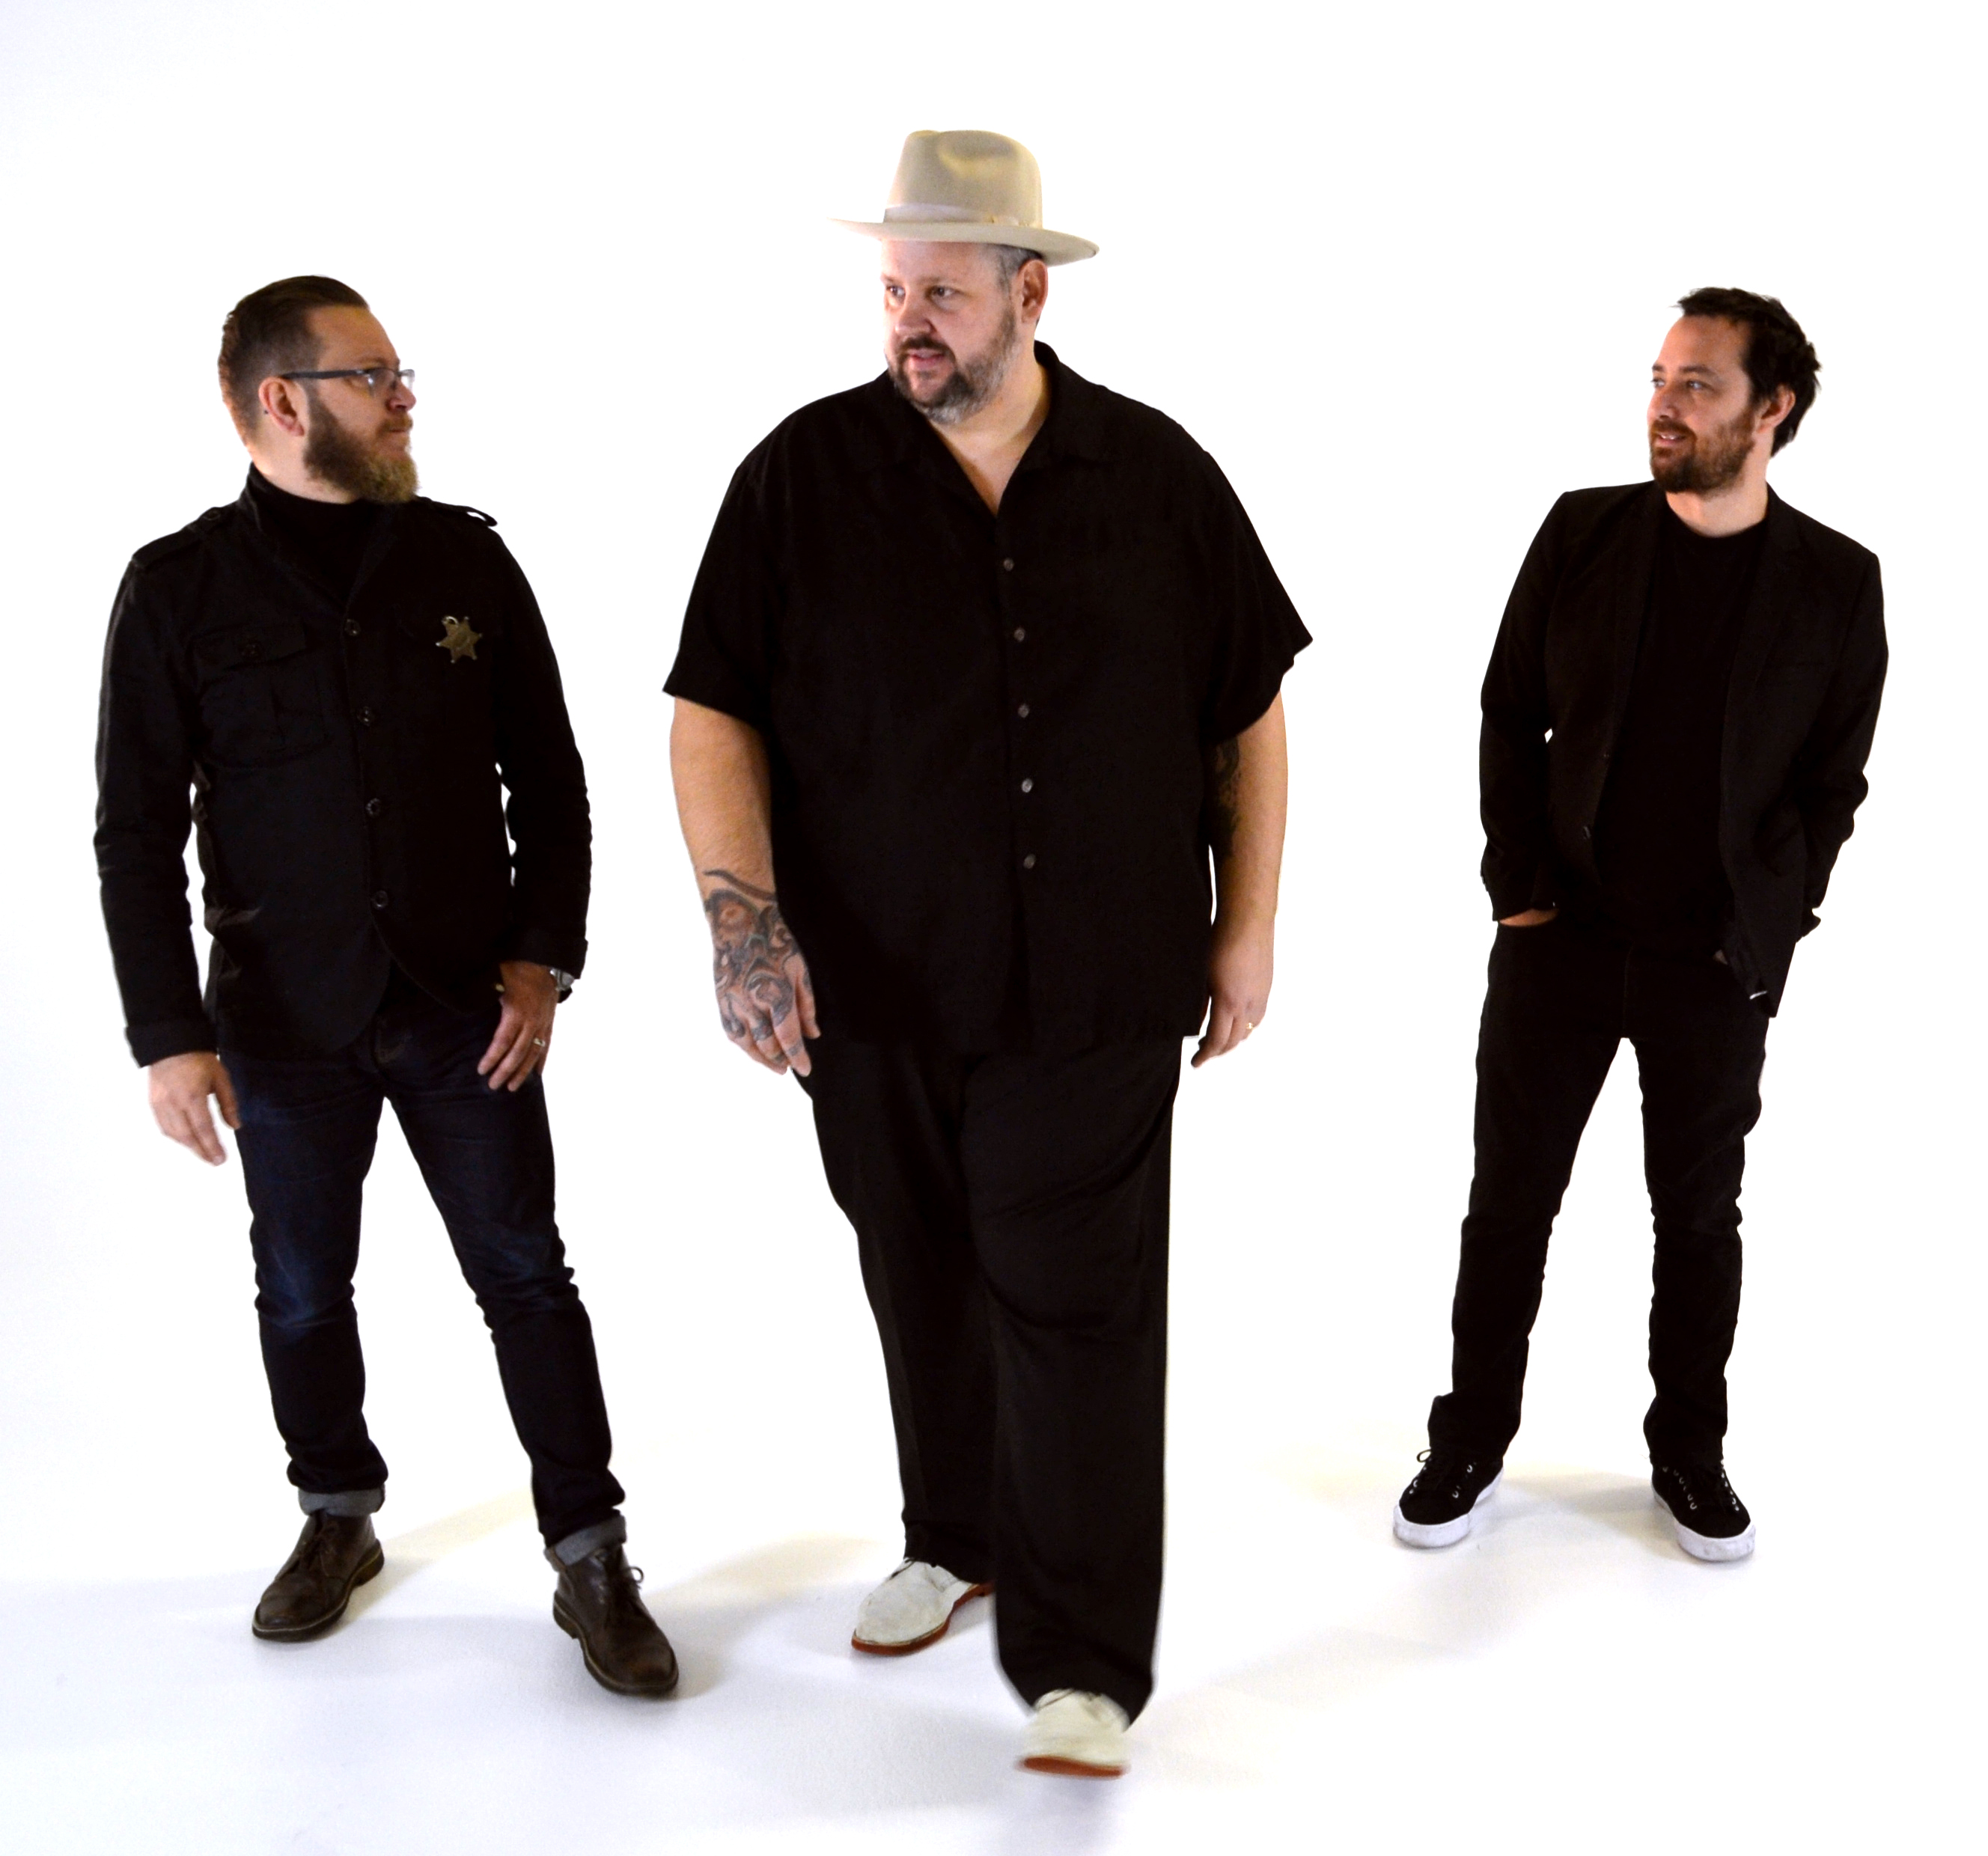 Big Boy Bloater & The LiMiTs announce new album 'Pills' – Out June 15th